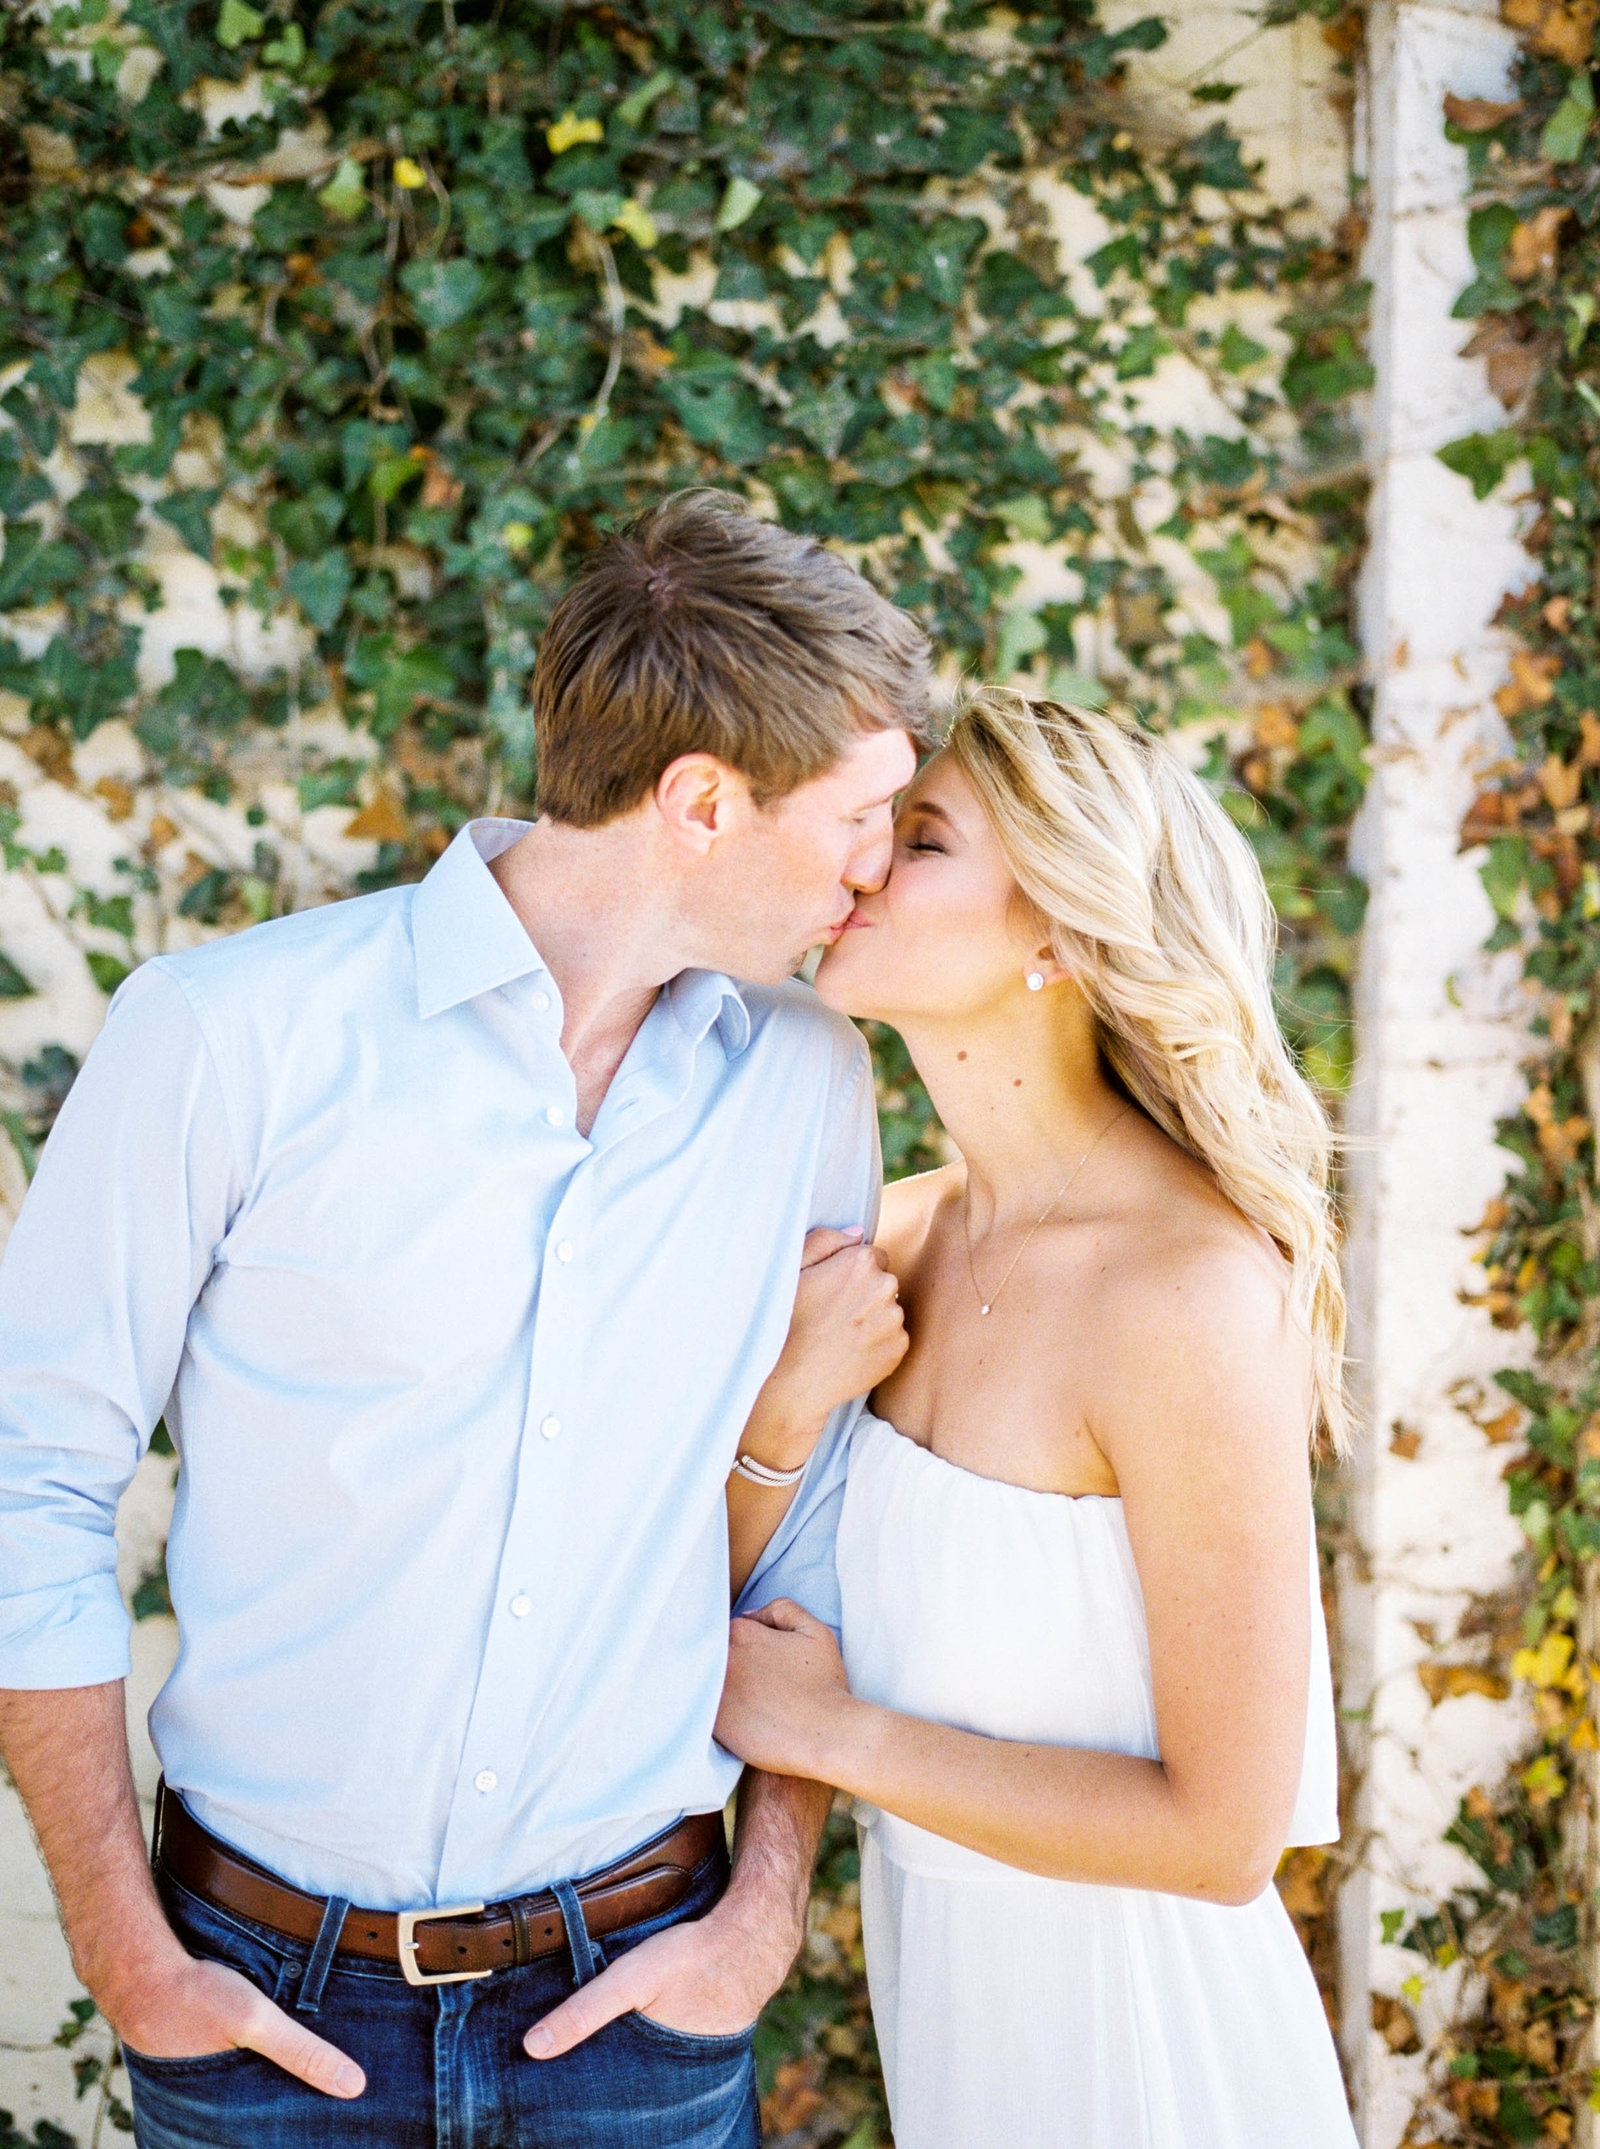 Dallas engagement photographer_Chelsea Q White-10